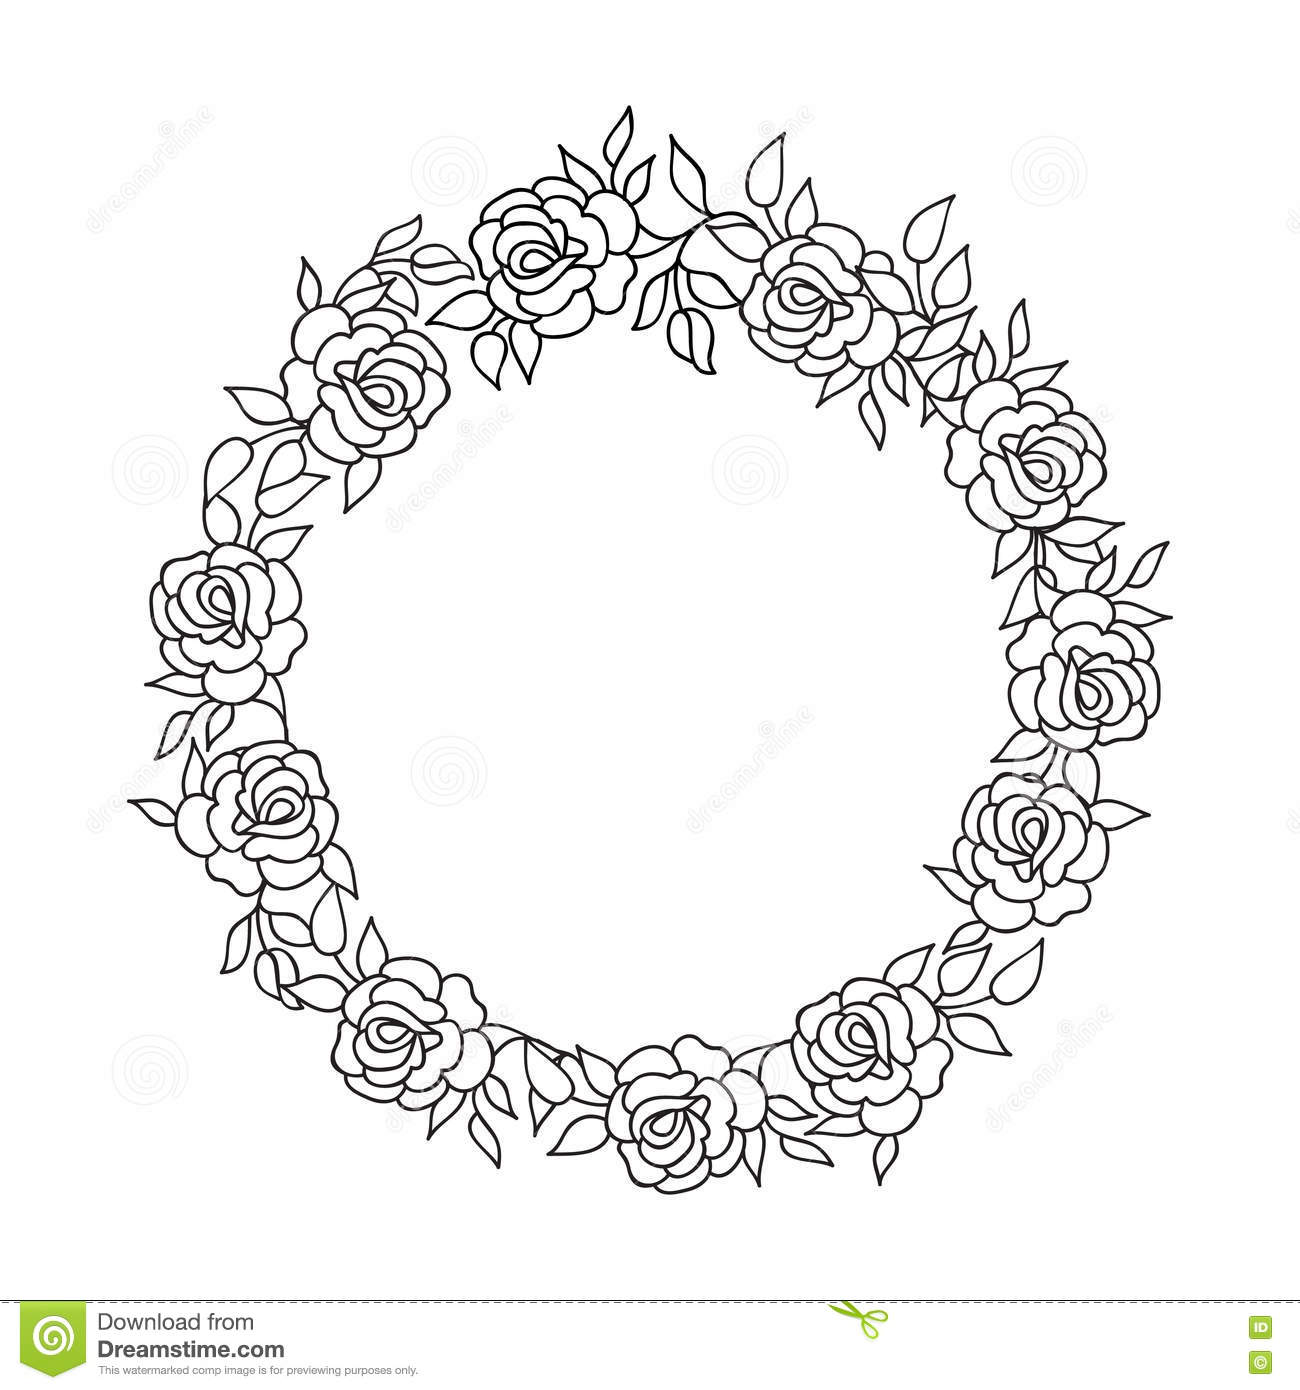 daisy flower garden coloring page